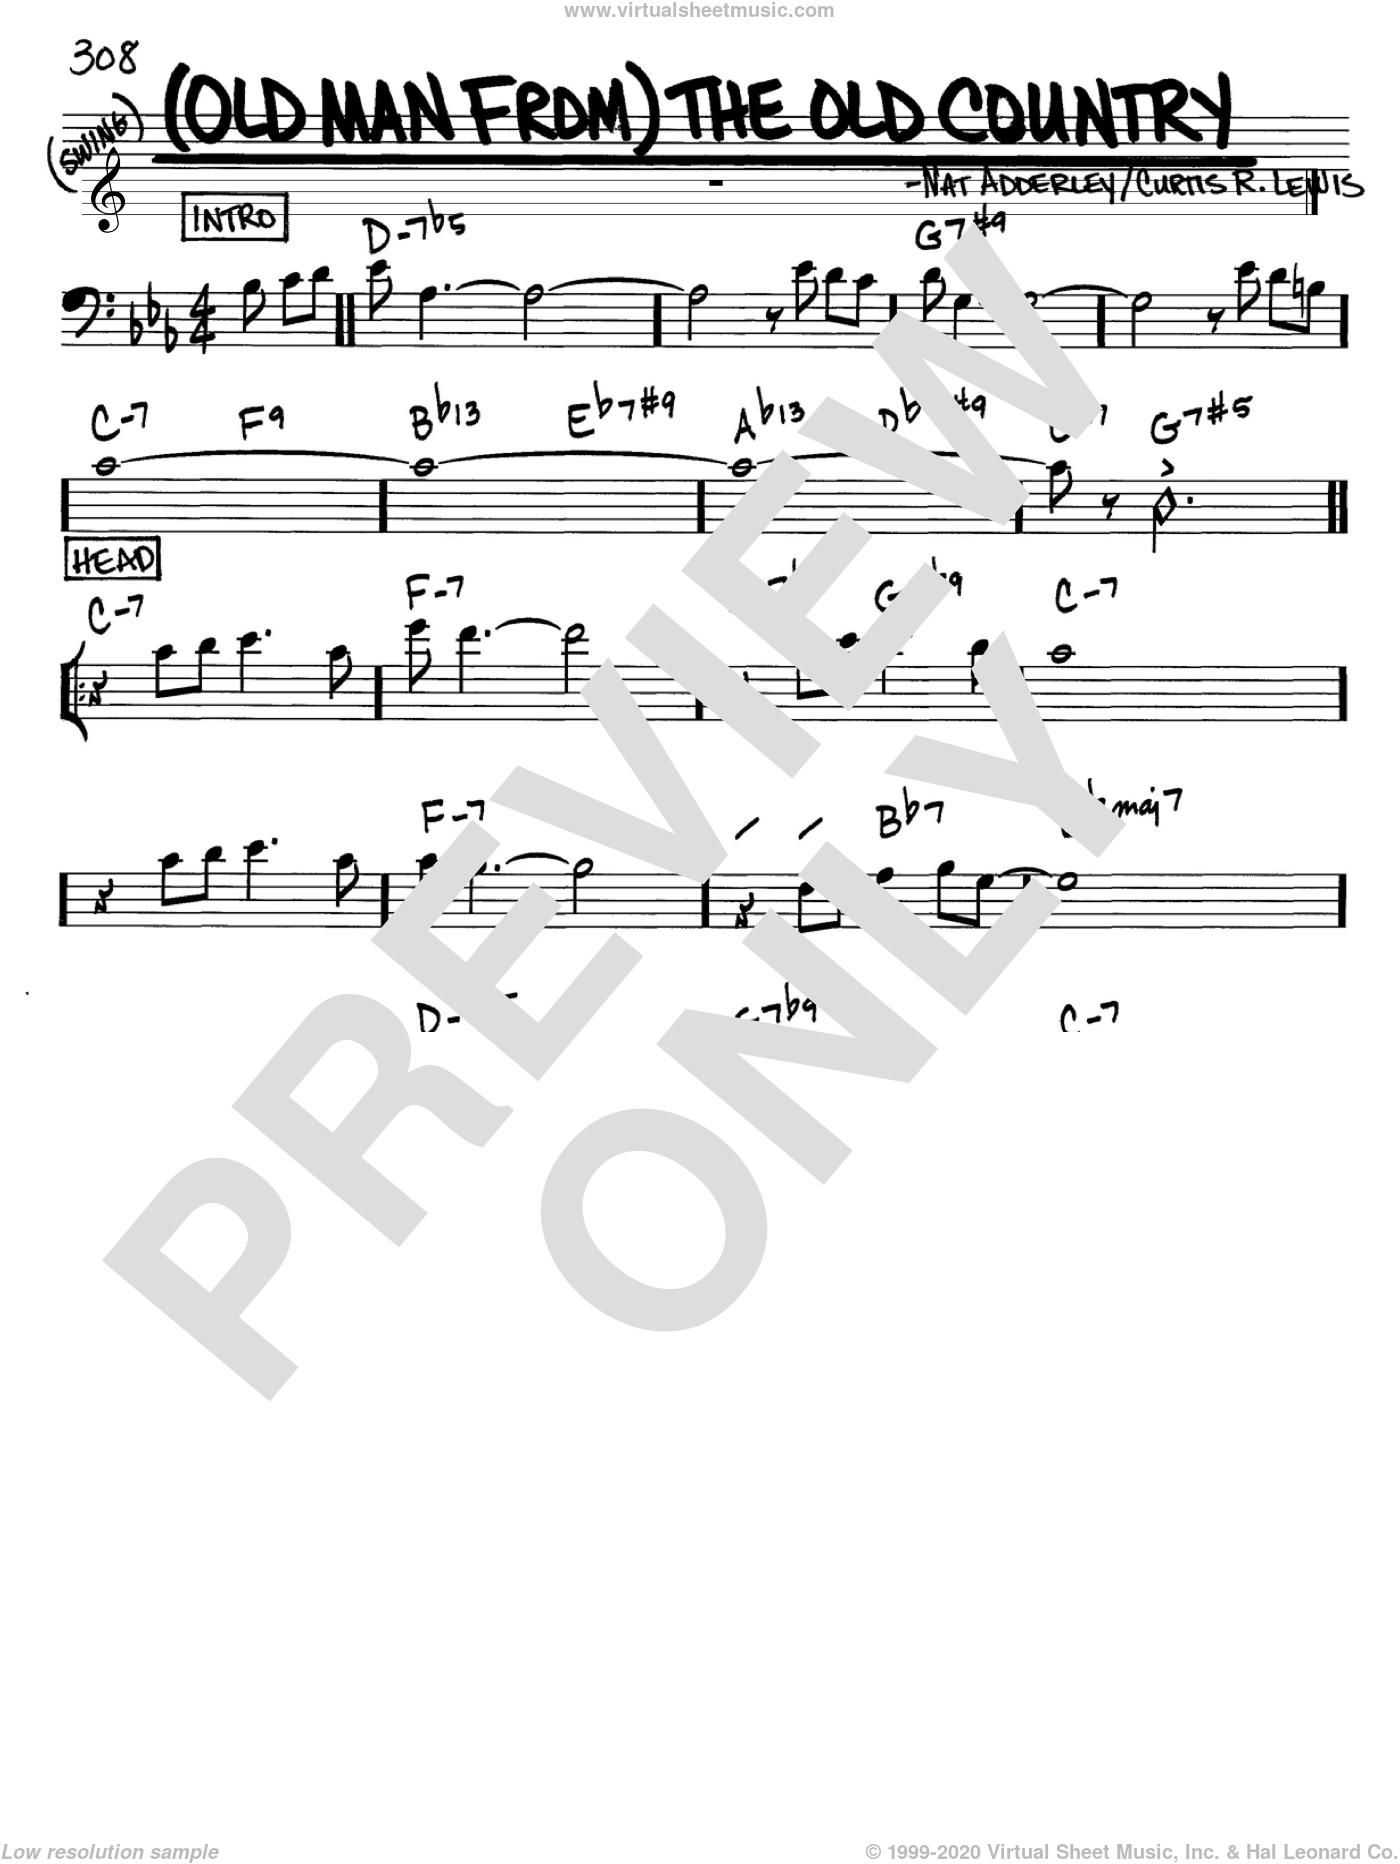 (Old Man From) The Old Country sheet music for voice and other instruments (Bass Clef ) by Curtis R. Lewis